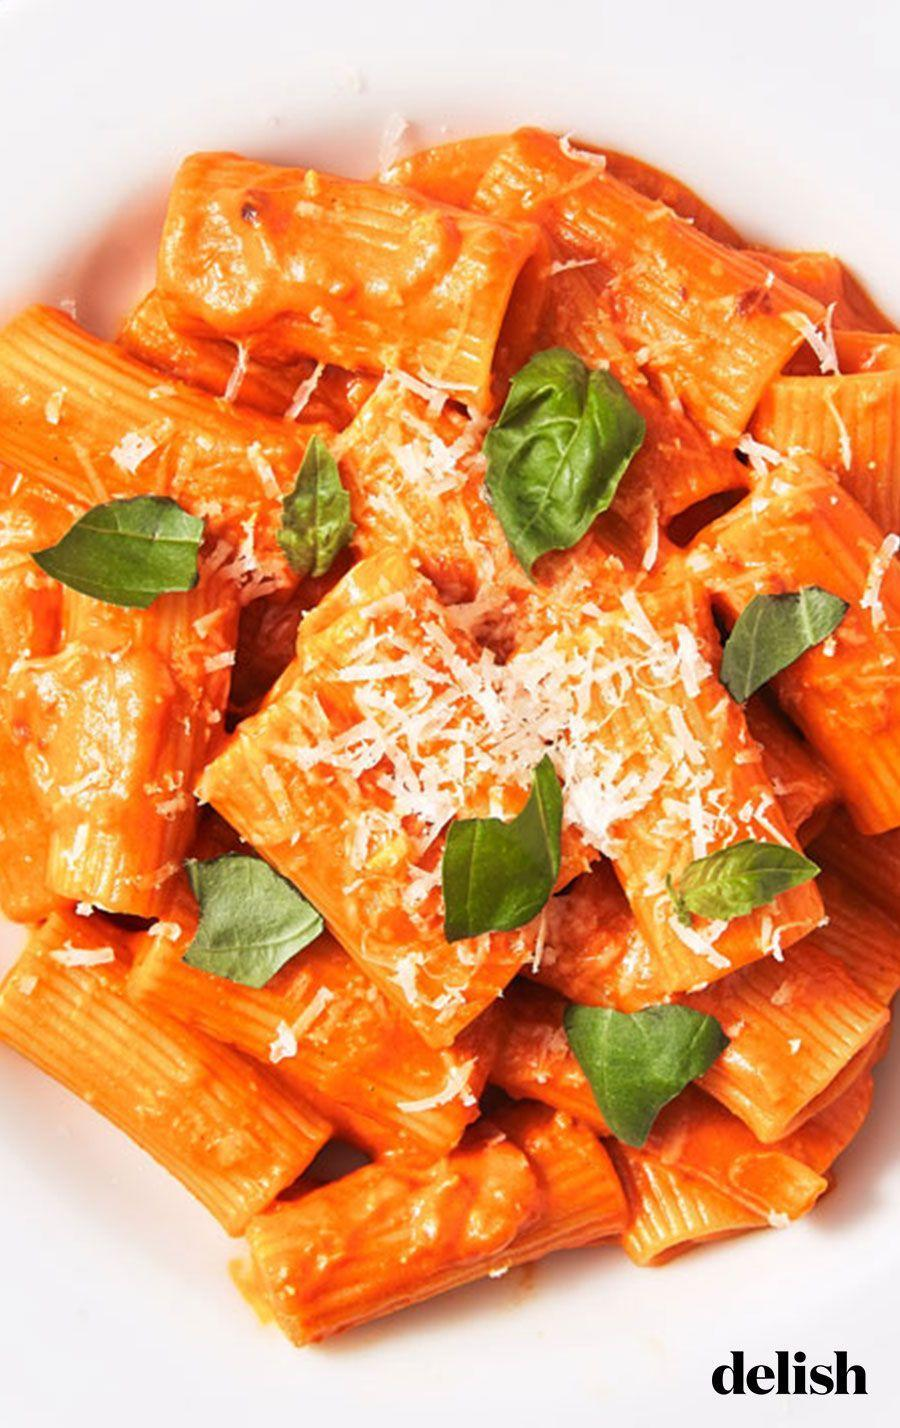 """<p>True story: This is the best vodka sauce the Delish team has ever tried.</p><p>Get the recipe from <a href=""""https://www.delish.com/cooking/recipe-ideas/a26556220/penne-alla-vodka-recipe/"""" rel=""""nofollow noopener"""" target=""""_blank"""" data-ylk=""""slk:Delish"""" class=""""link rapid-noclick-resp"""">Delish</a>.</p>"""